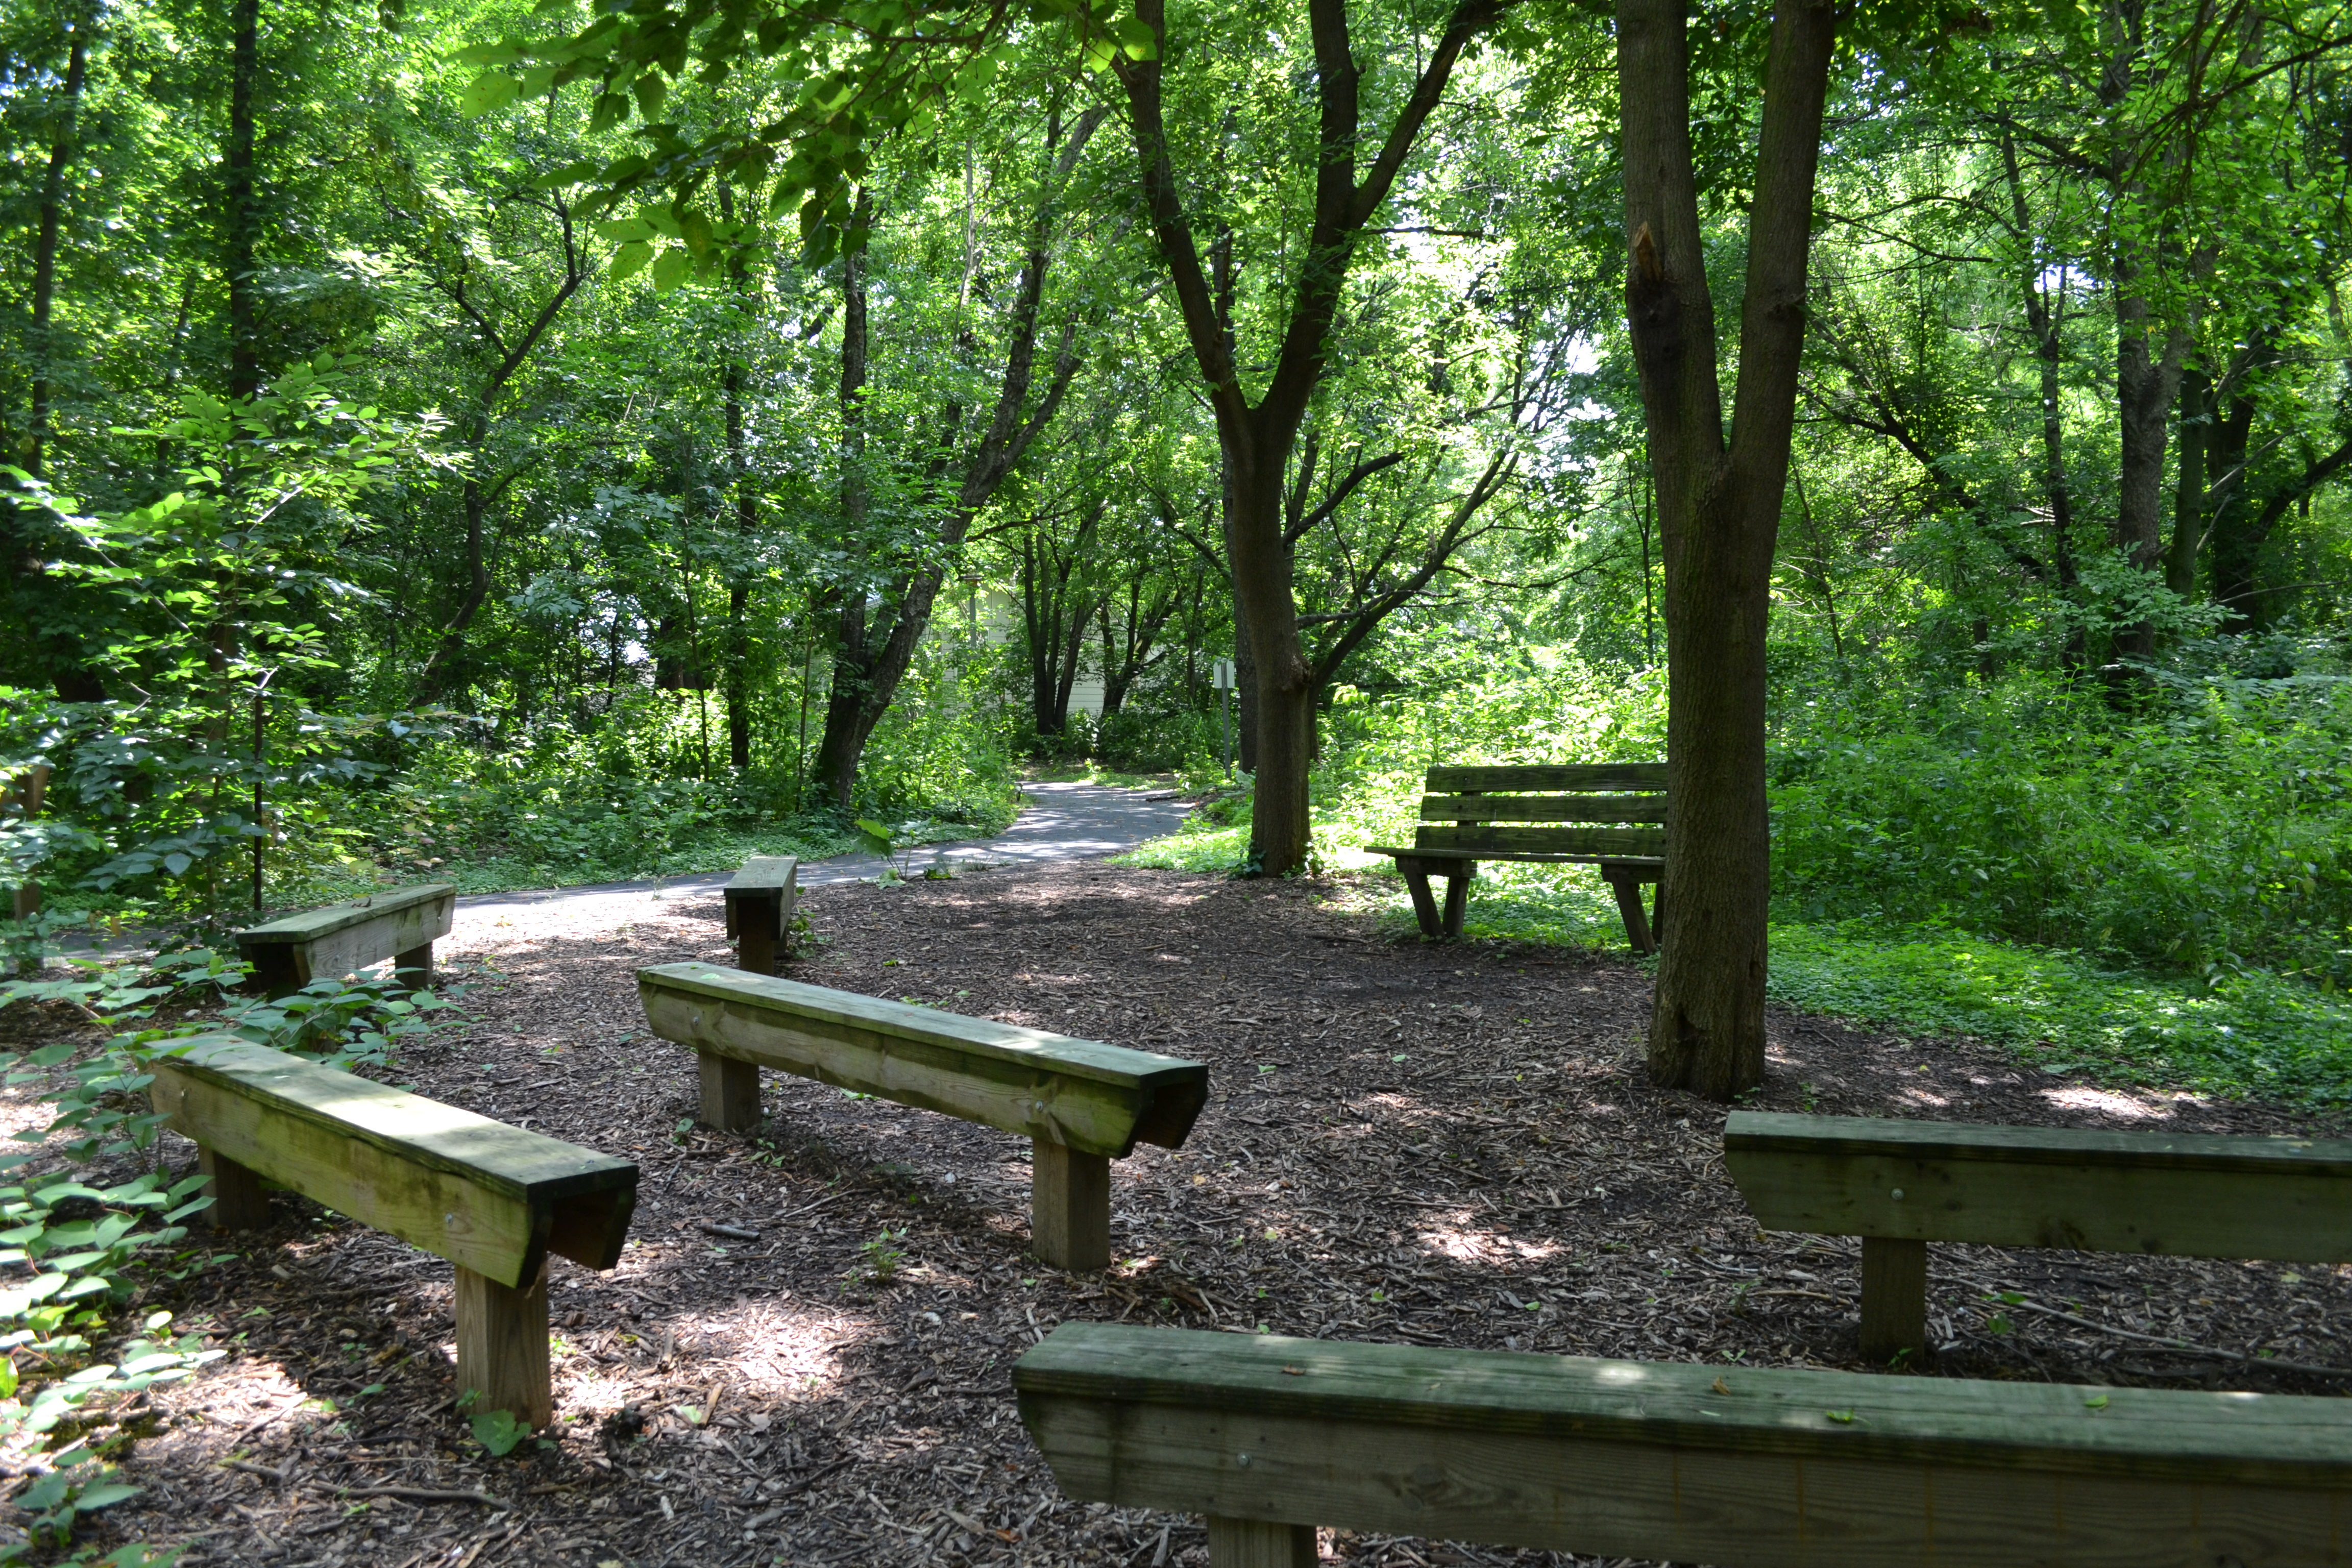 A small amphitheater offers an outdoor classroom and learning space